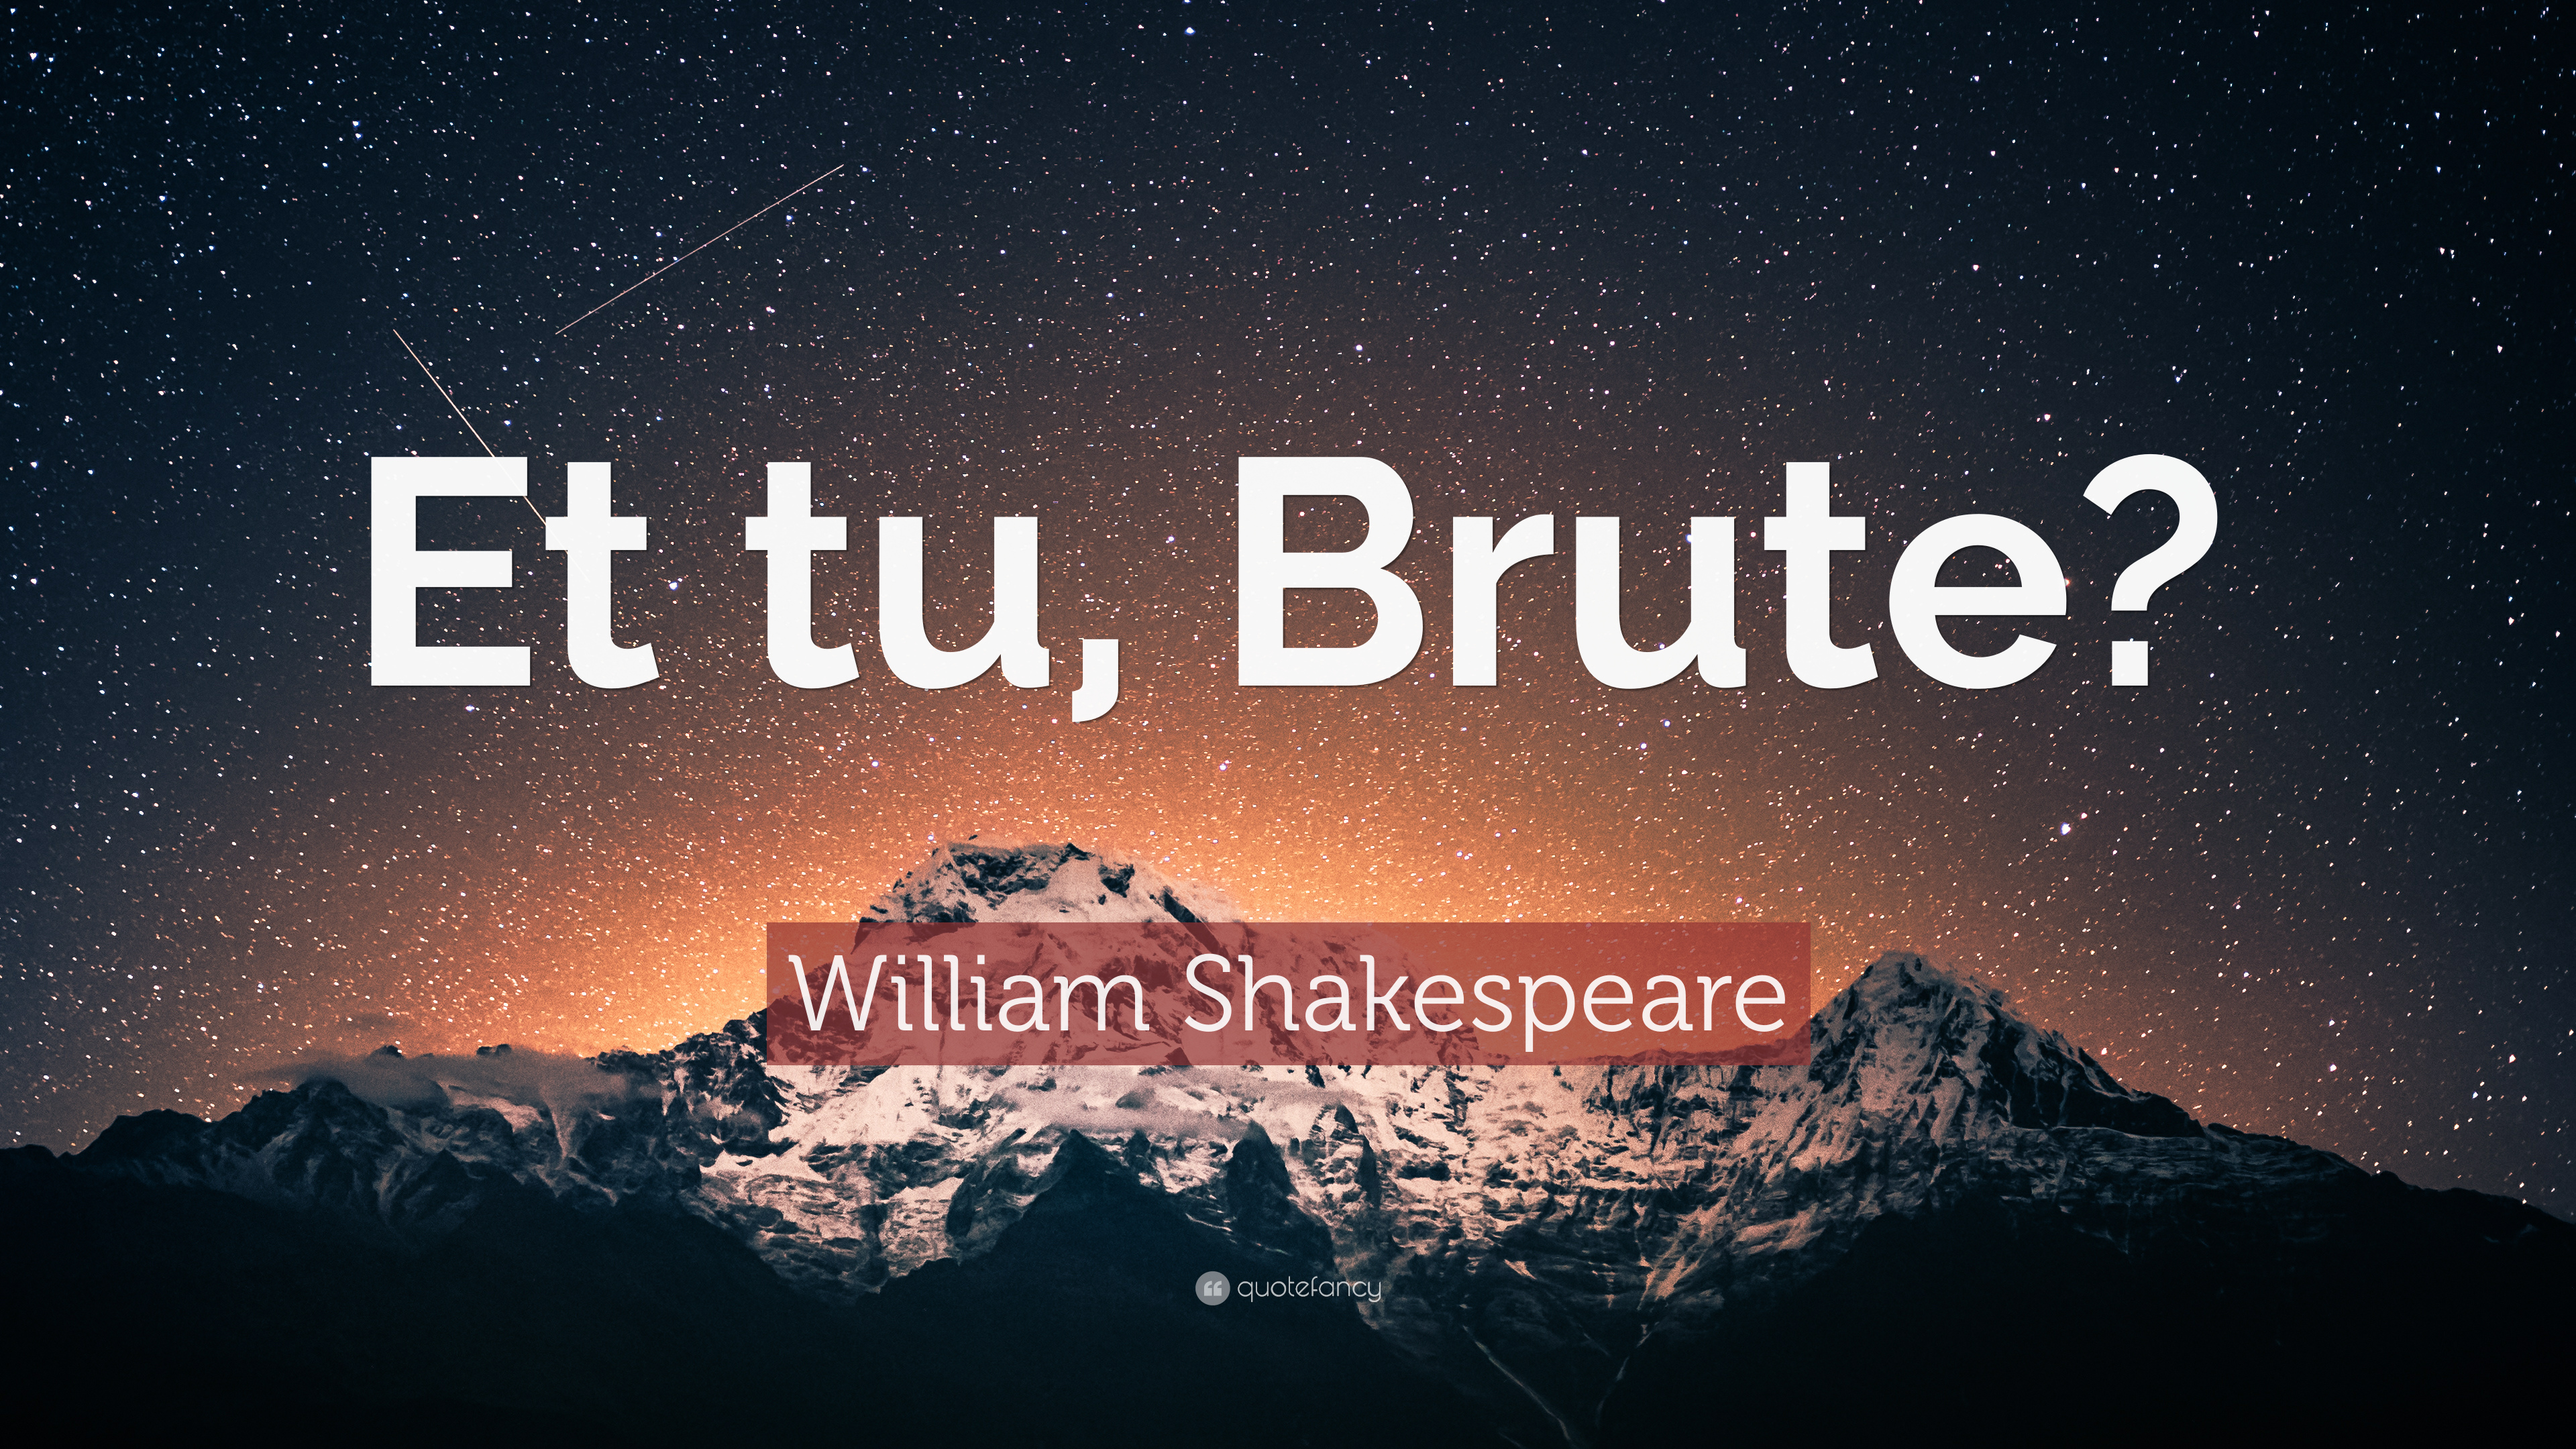 Shakespeare Wallpapers With Quotes William Shakespeare Quote Et Tu Brute 16 Wallpapers